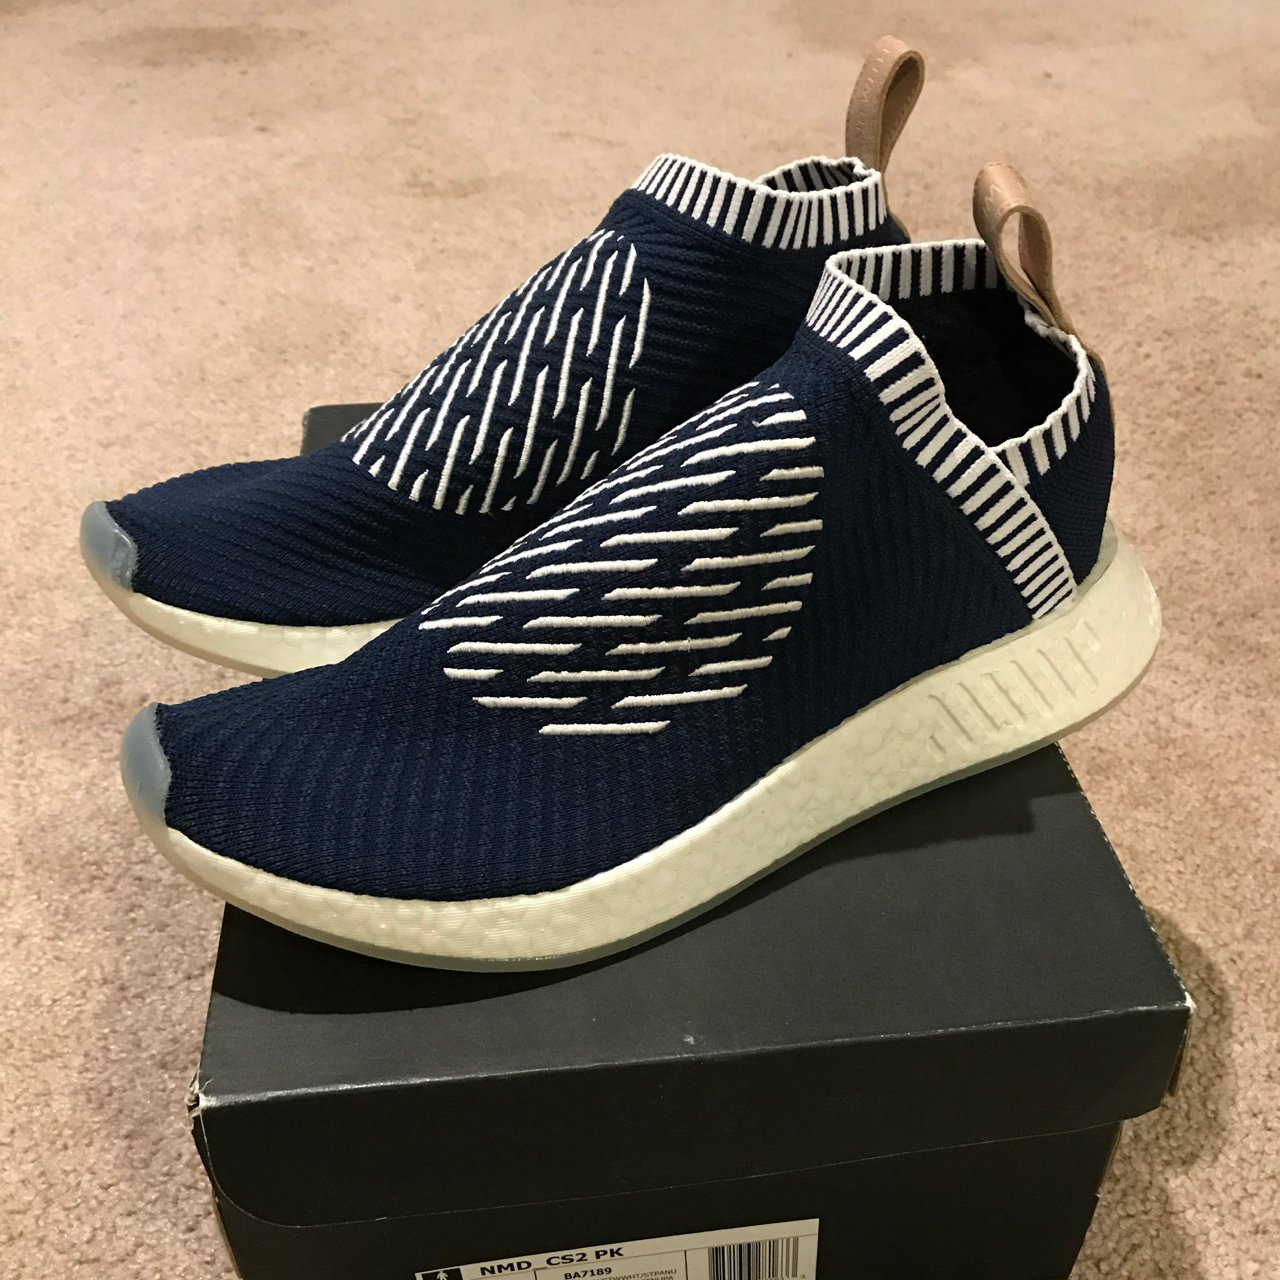 67aae8062 Fits From Depop Once Worn Size 9 Nmd Adidas Bought Cs2  ronin  5 8w6BaqvUx